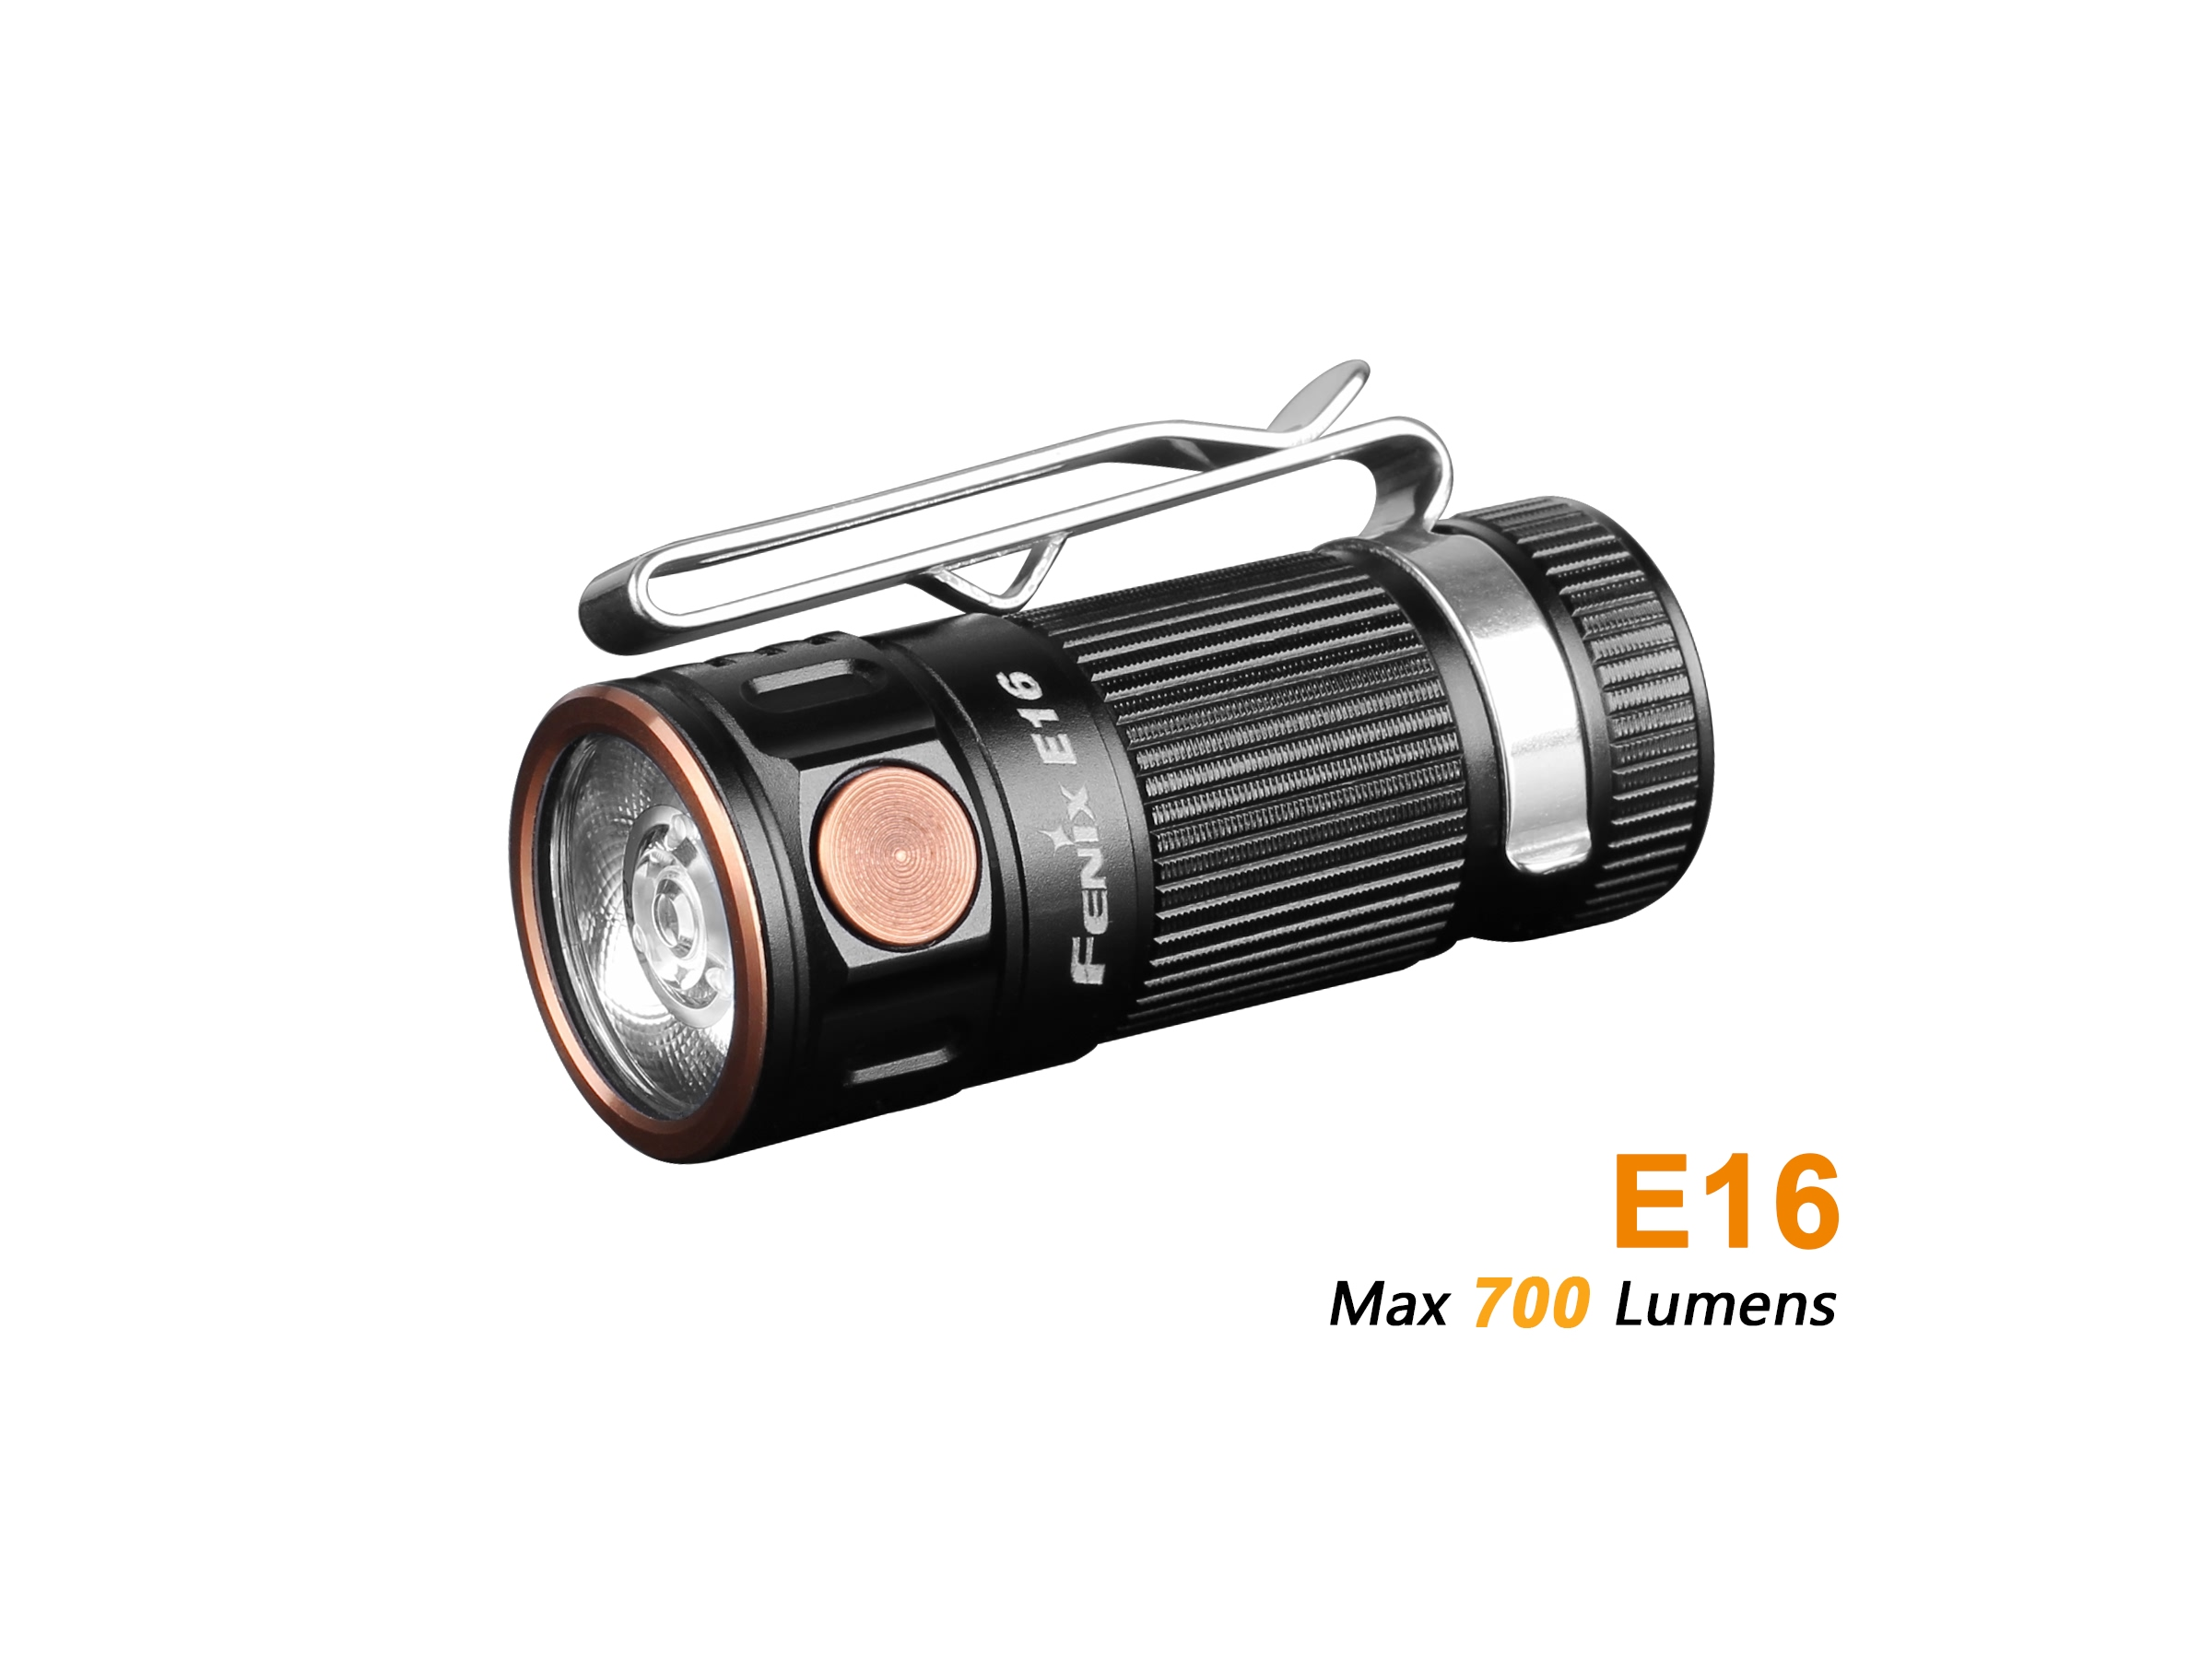 Fenix E16 Ultra Compact EDC Flashlight - 700 Lumens